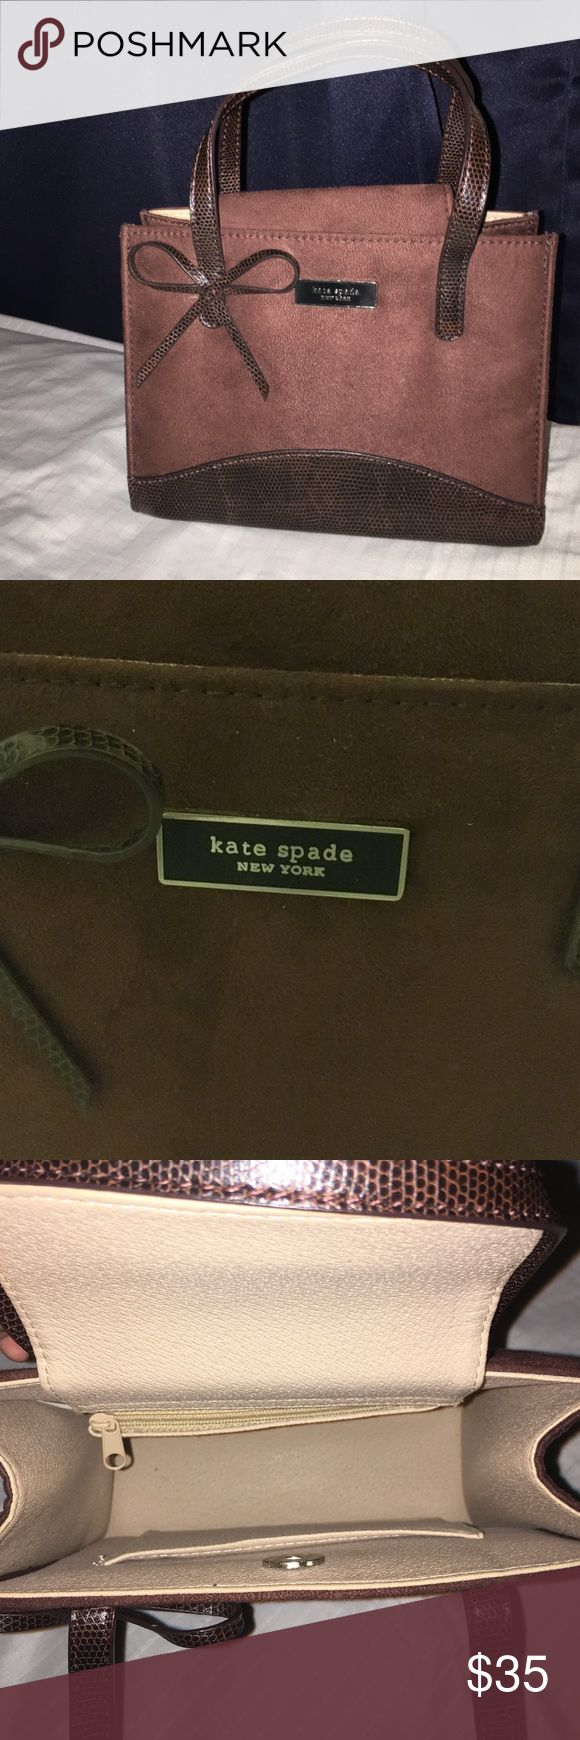 Authentic Kate Spade New York mini satchel Mini Kate Spade satchel crafted in a chocolate suede with authentic flat handles plus bow at the bottom of the left handle. Bottom of satchel is brown leather with 4 silver metal pieces for stands. This Kate Spad features one interior zip pocket and one interior slip pockets. Magnetic closure. Used for decor in my room, never used. kate spade Bags Mini Bags